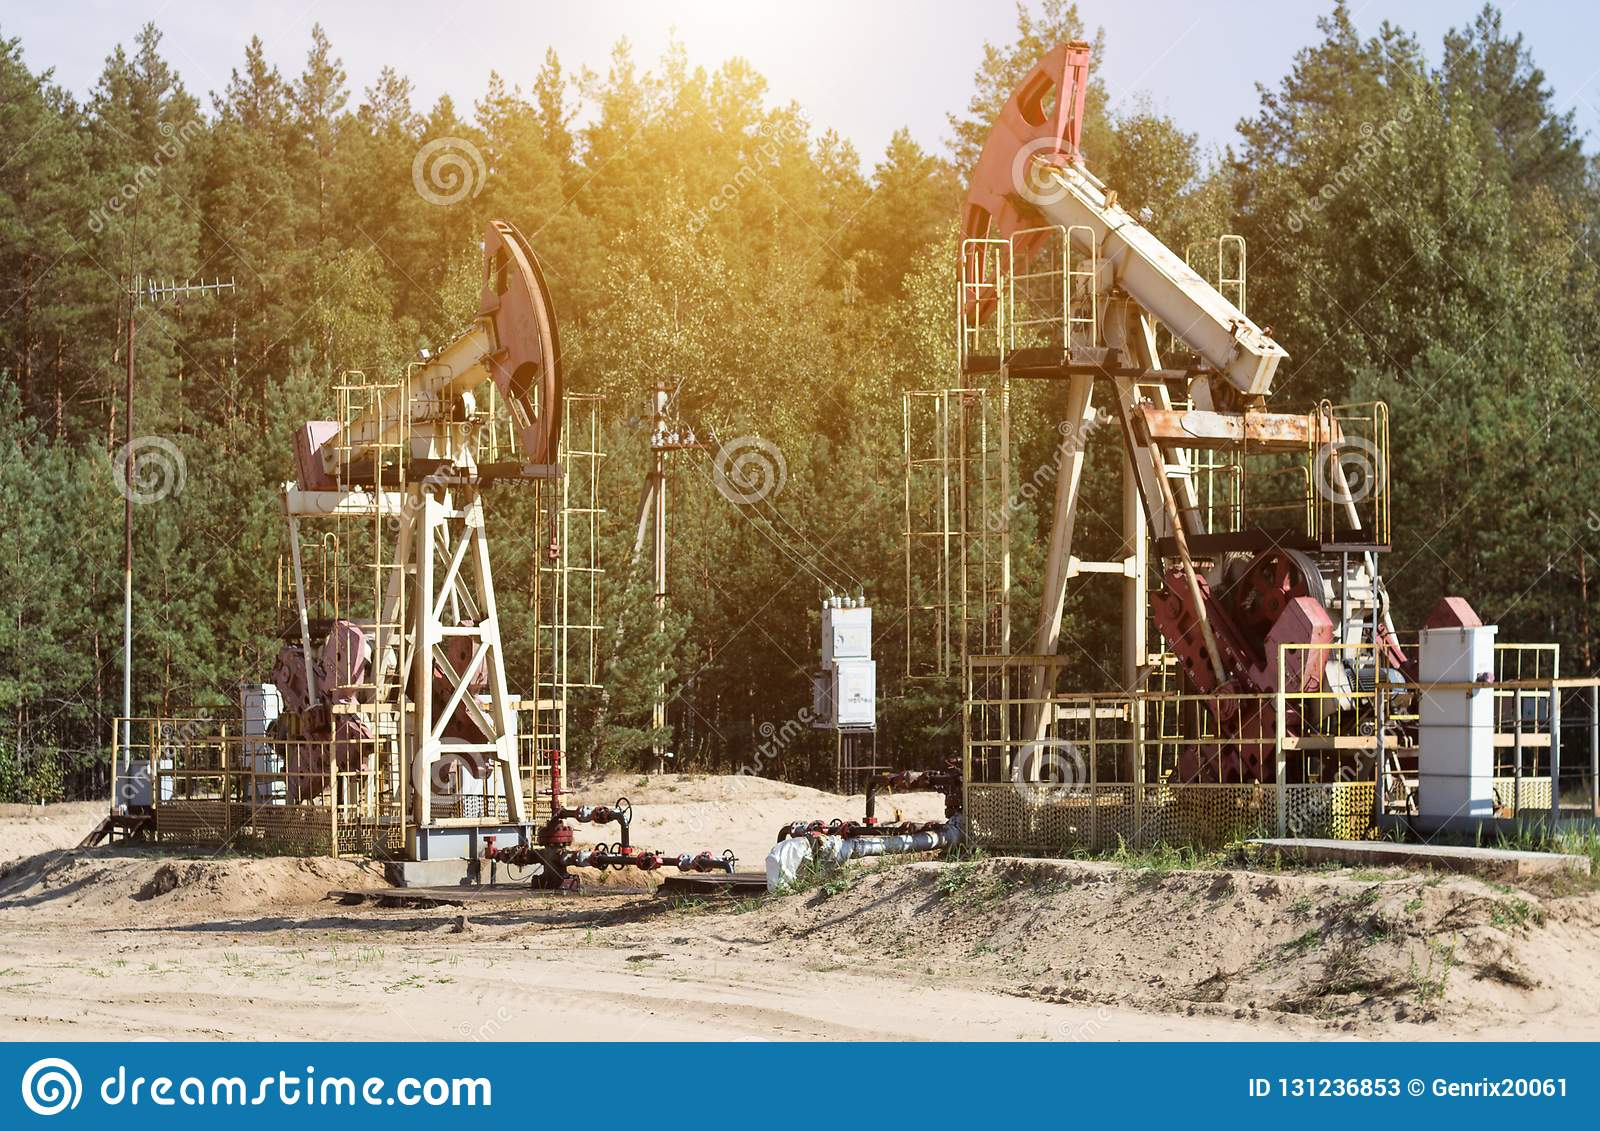 Oil well for the production of oil and gasoline and gas on the background of the forest, the production of gasoline, pumpjack